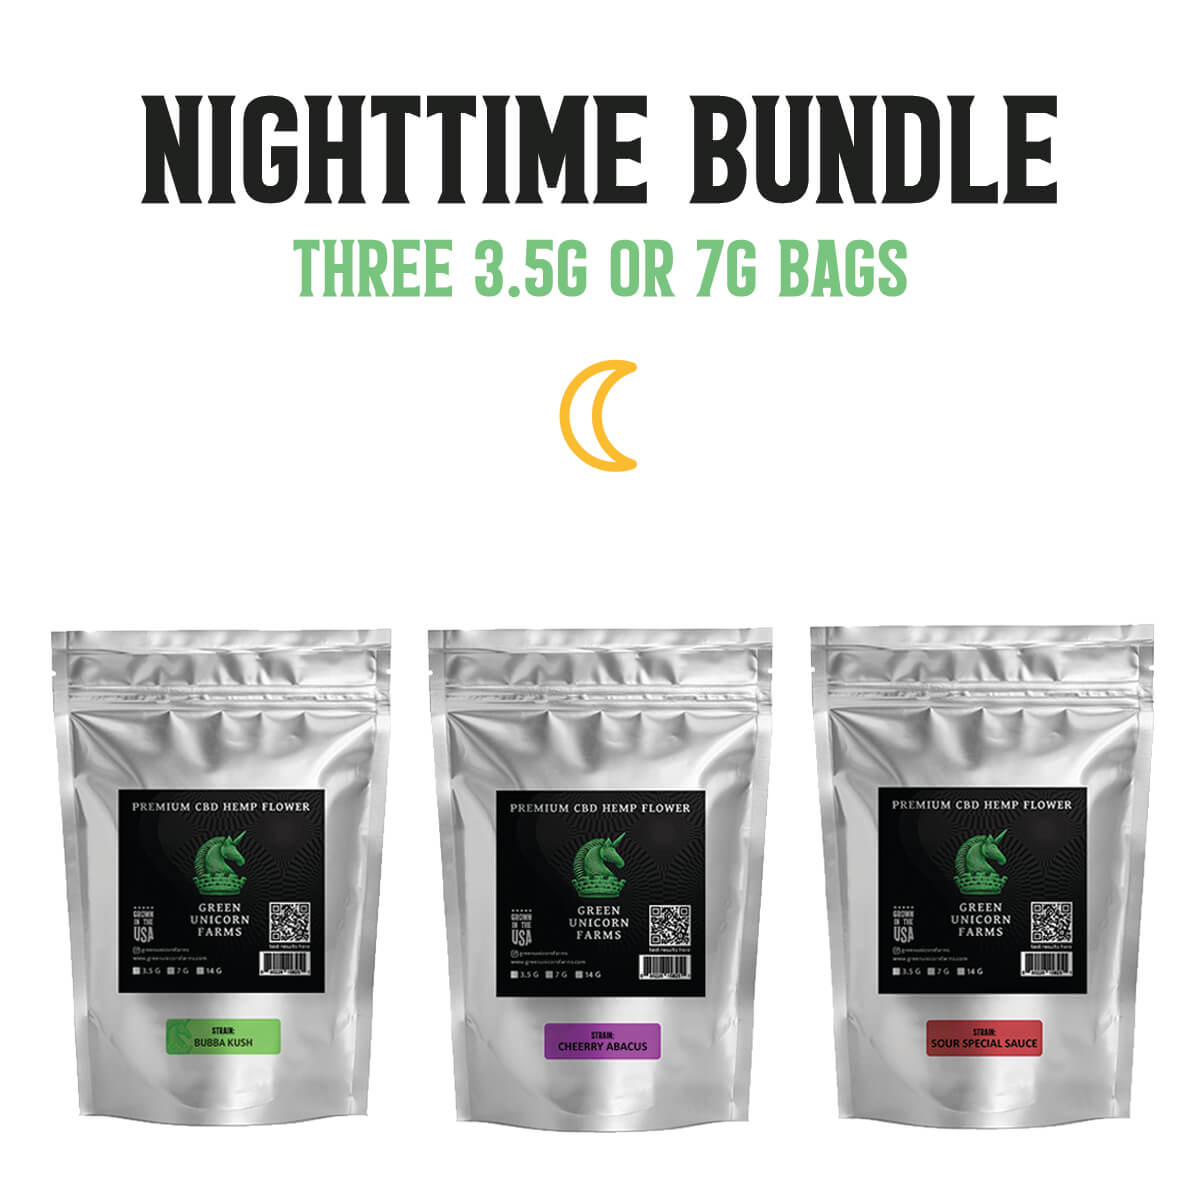 Indica nighttime cbd flower bundle